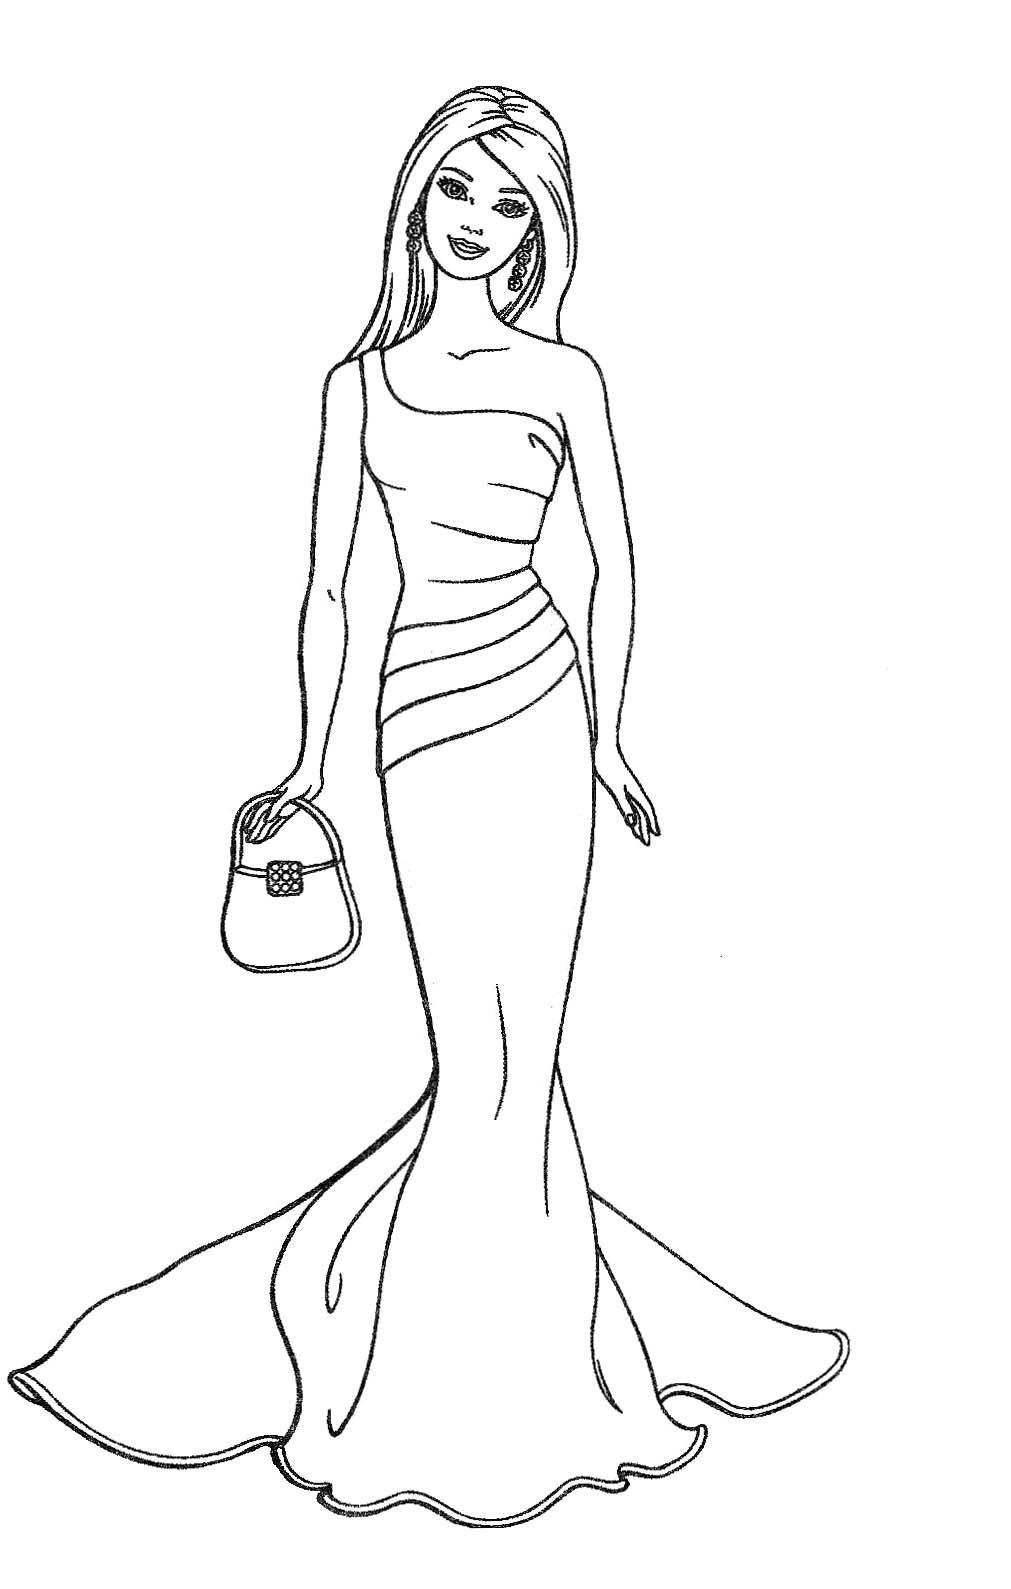 Quinceanera Coloring Page All Fashion Pages | lusoplay.com | 1589x1011